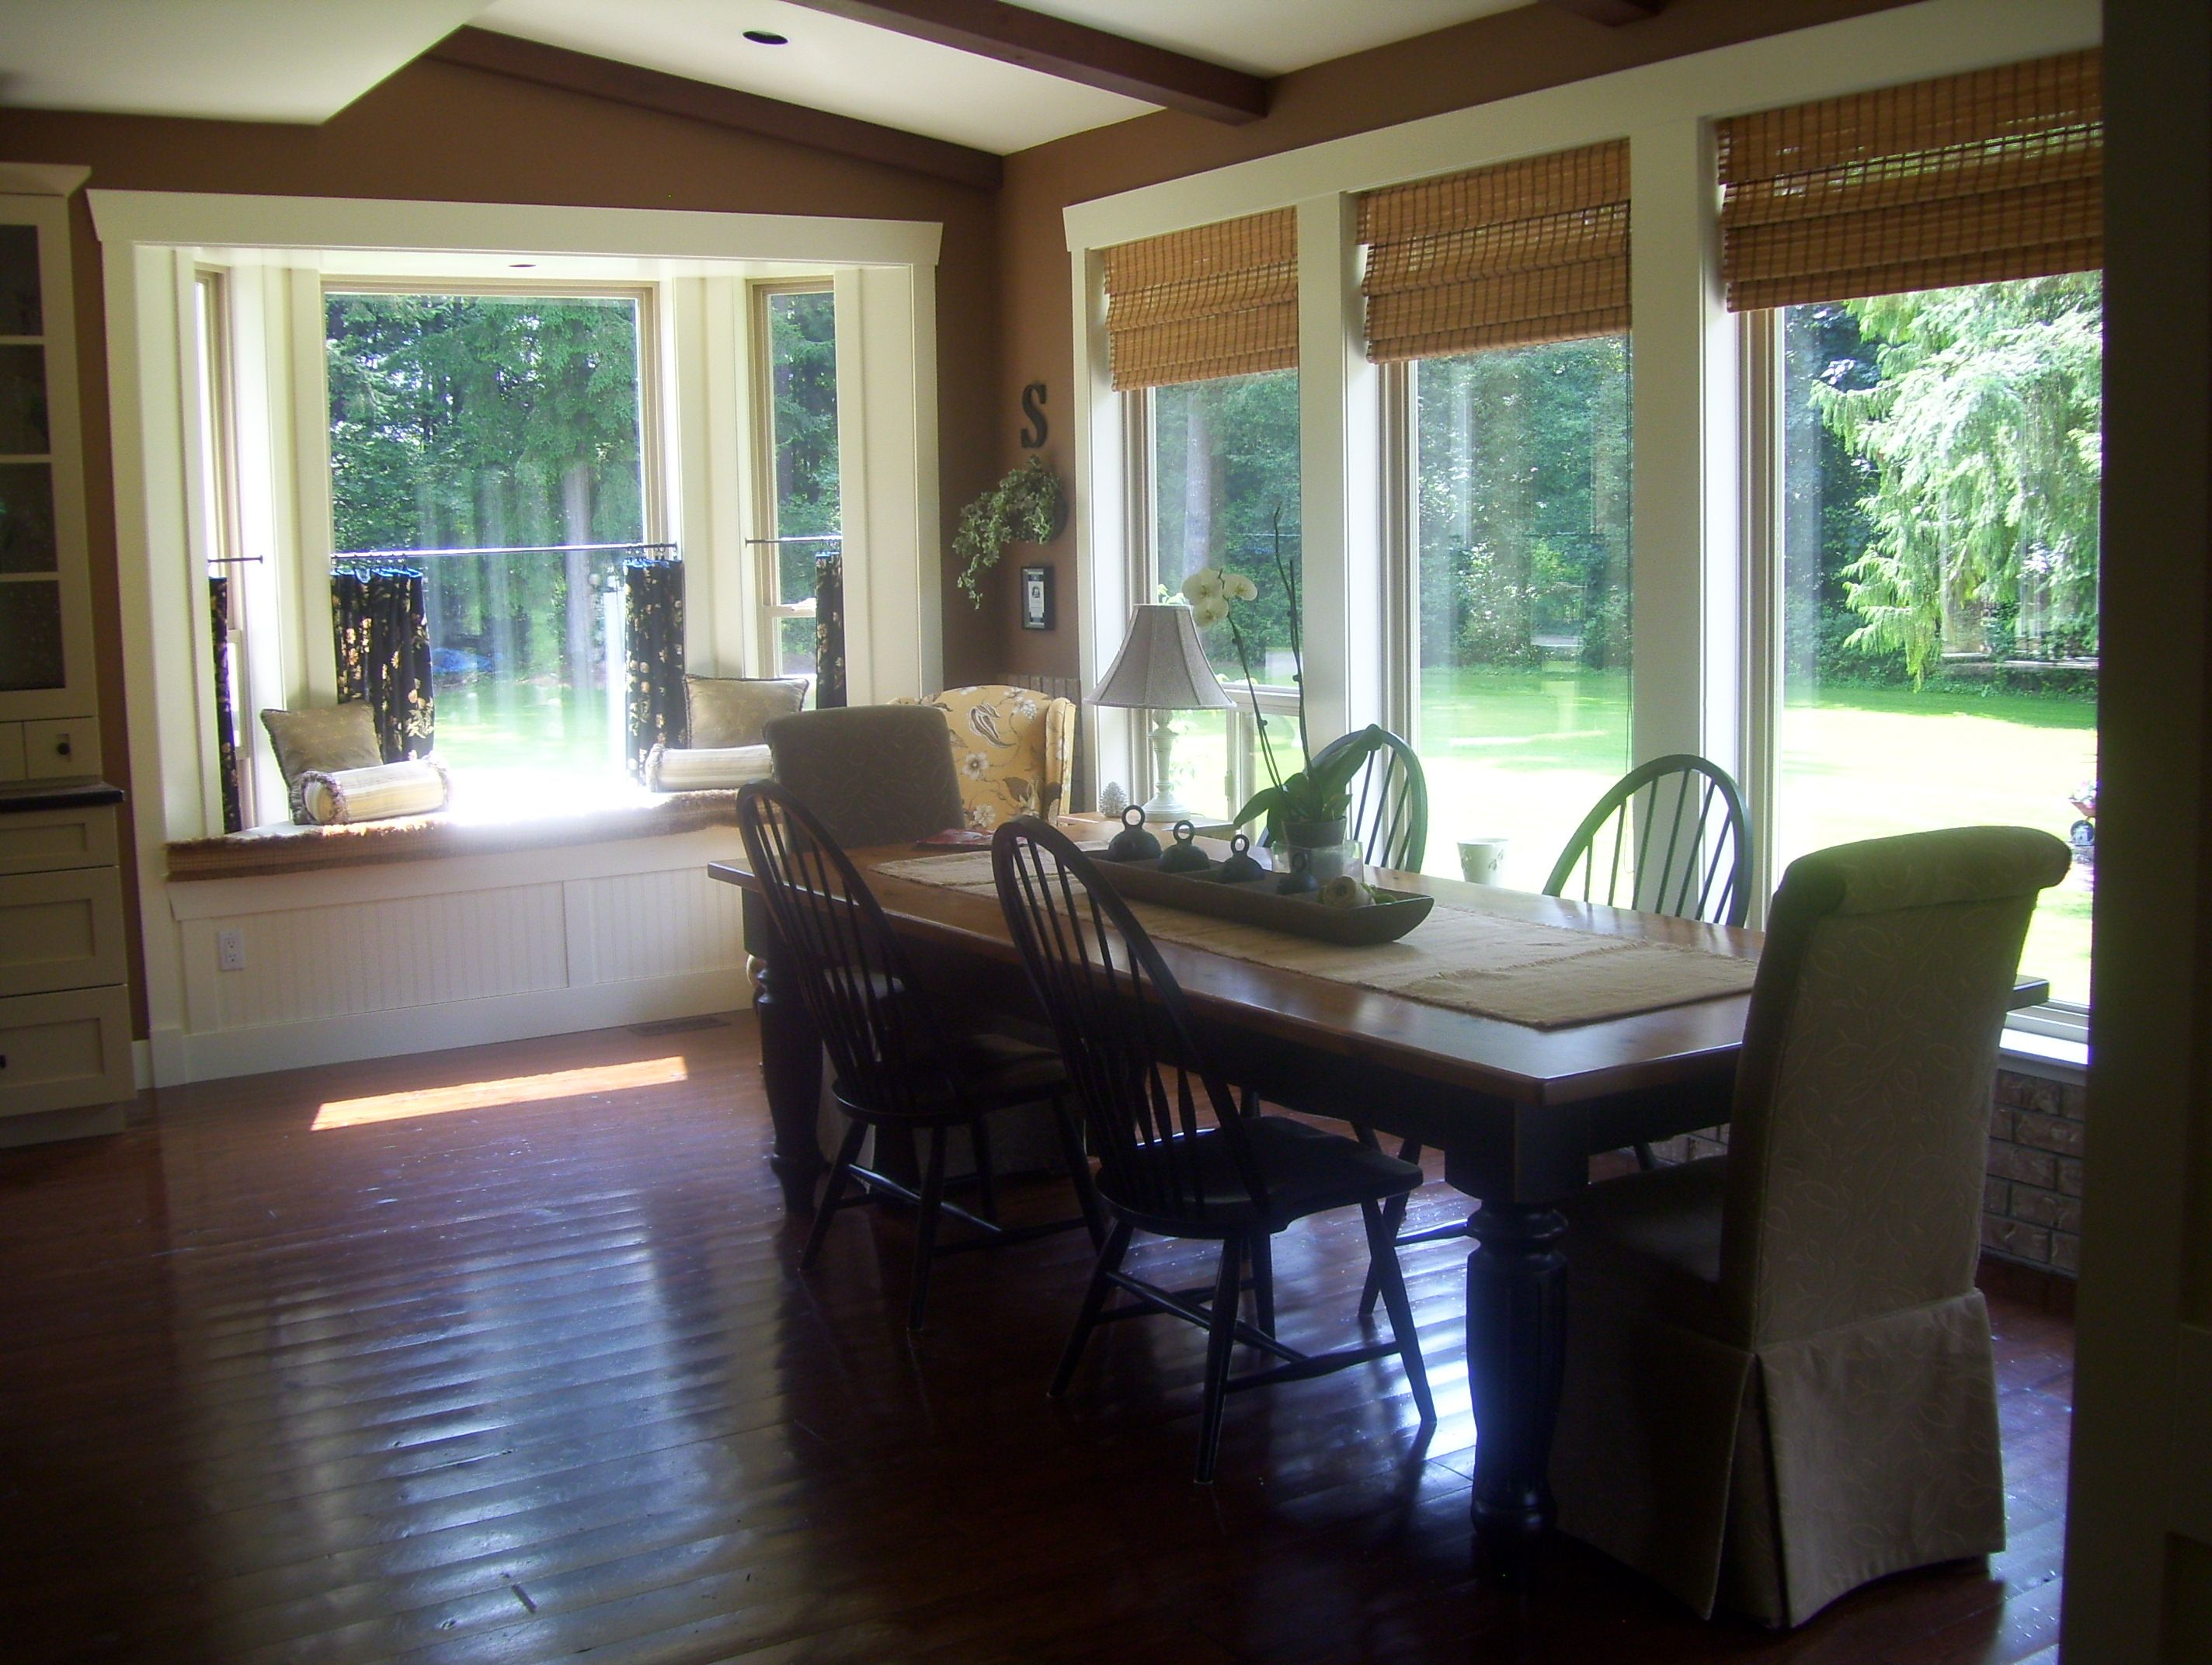 Kitchen eating area we have no formal dining room Maplecroft